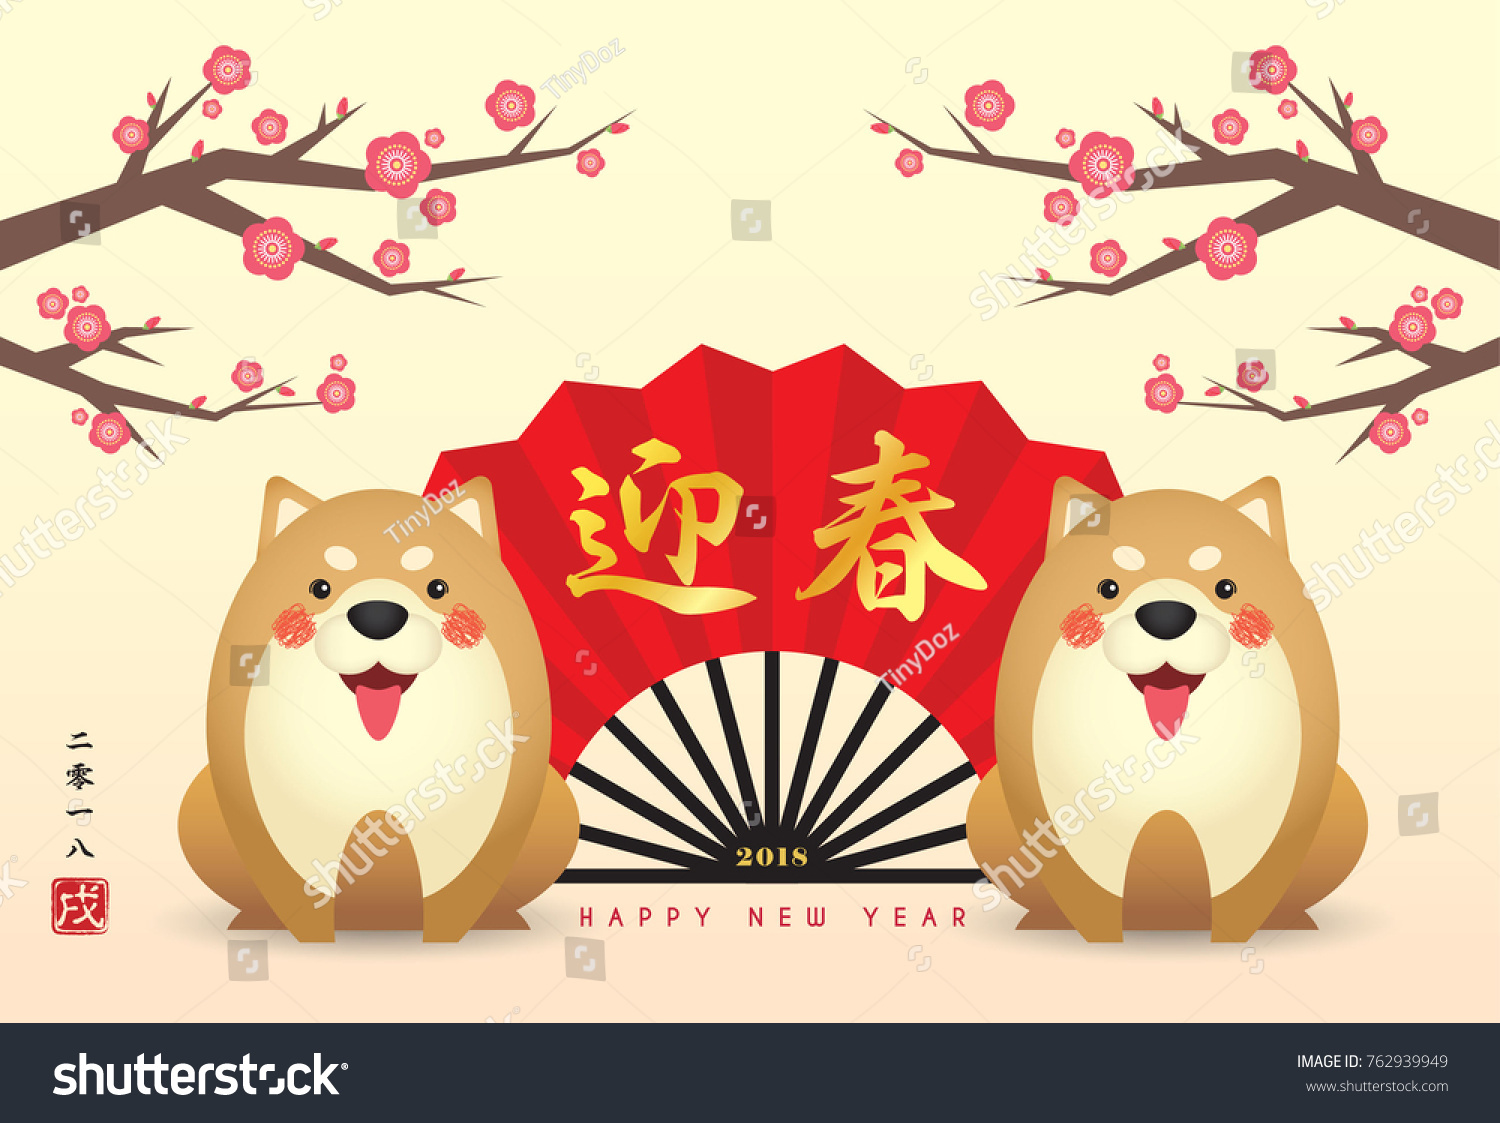 2018 chinese new year greeting card template cute cartoon dog with red chinese fan and